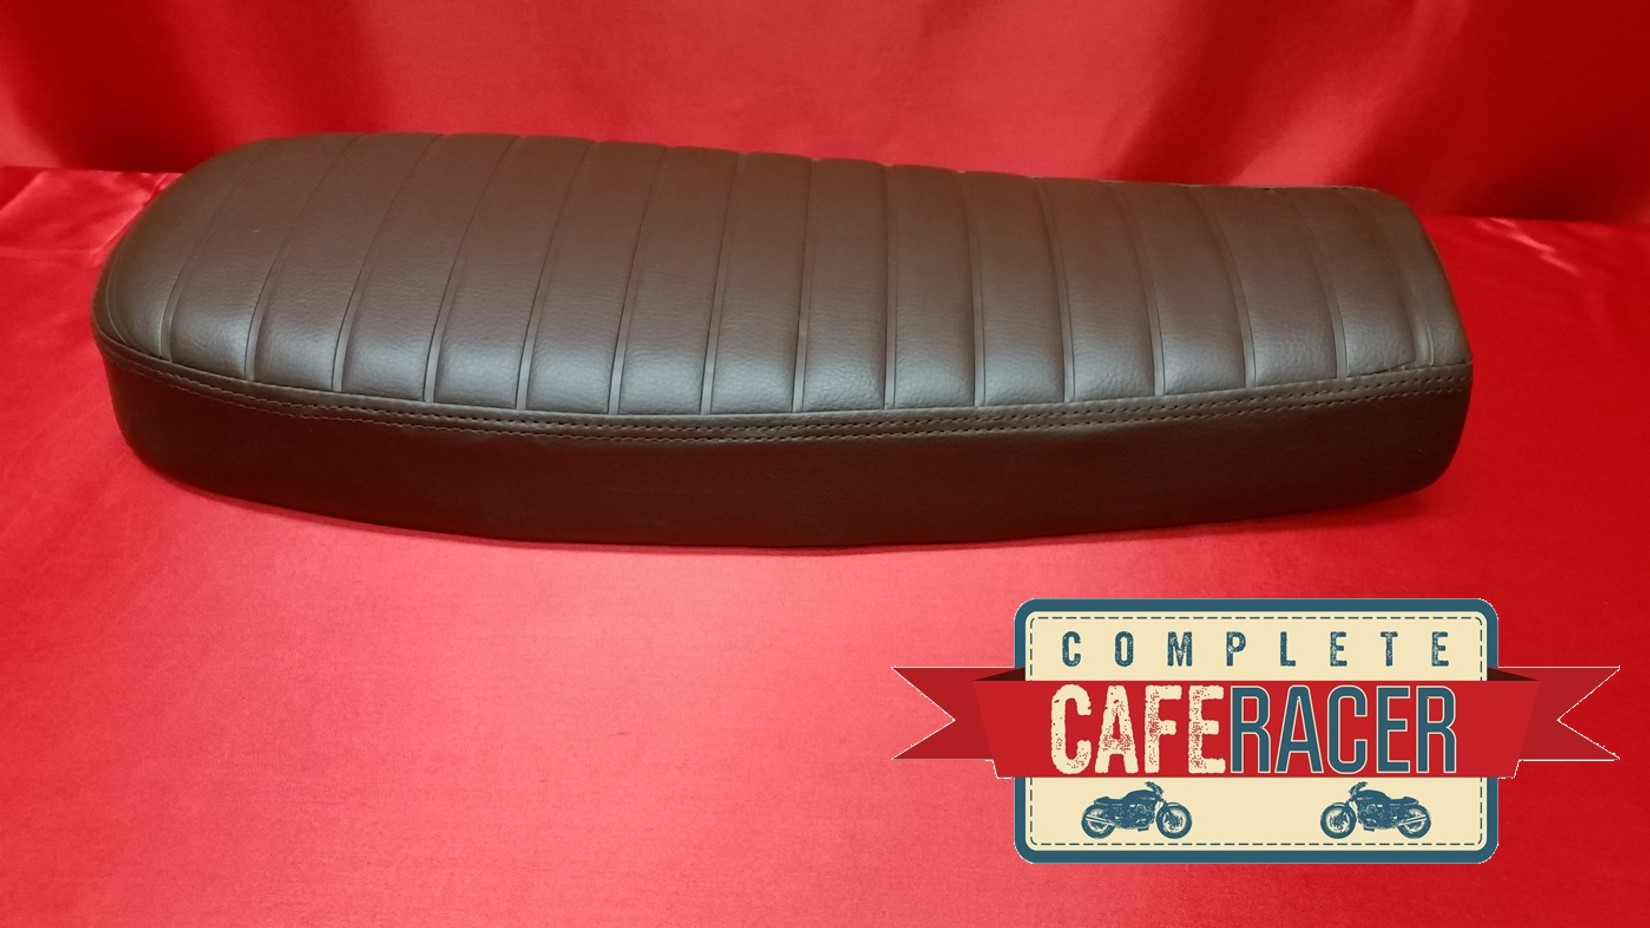 (BS11) BRAT / SCRAMBLER STYLE CAFE RACER LONGER SEAT FINISHED IN BROWN LEATHERETTE